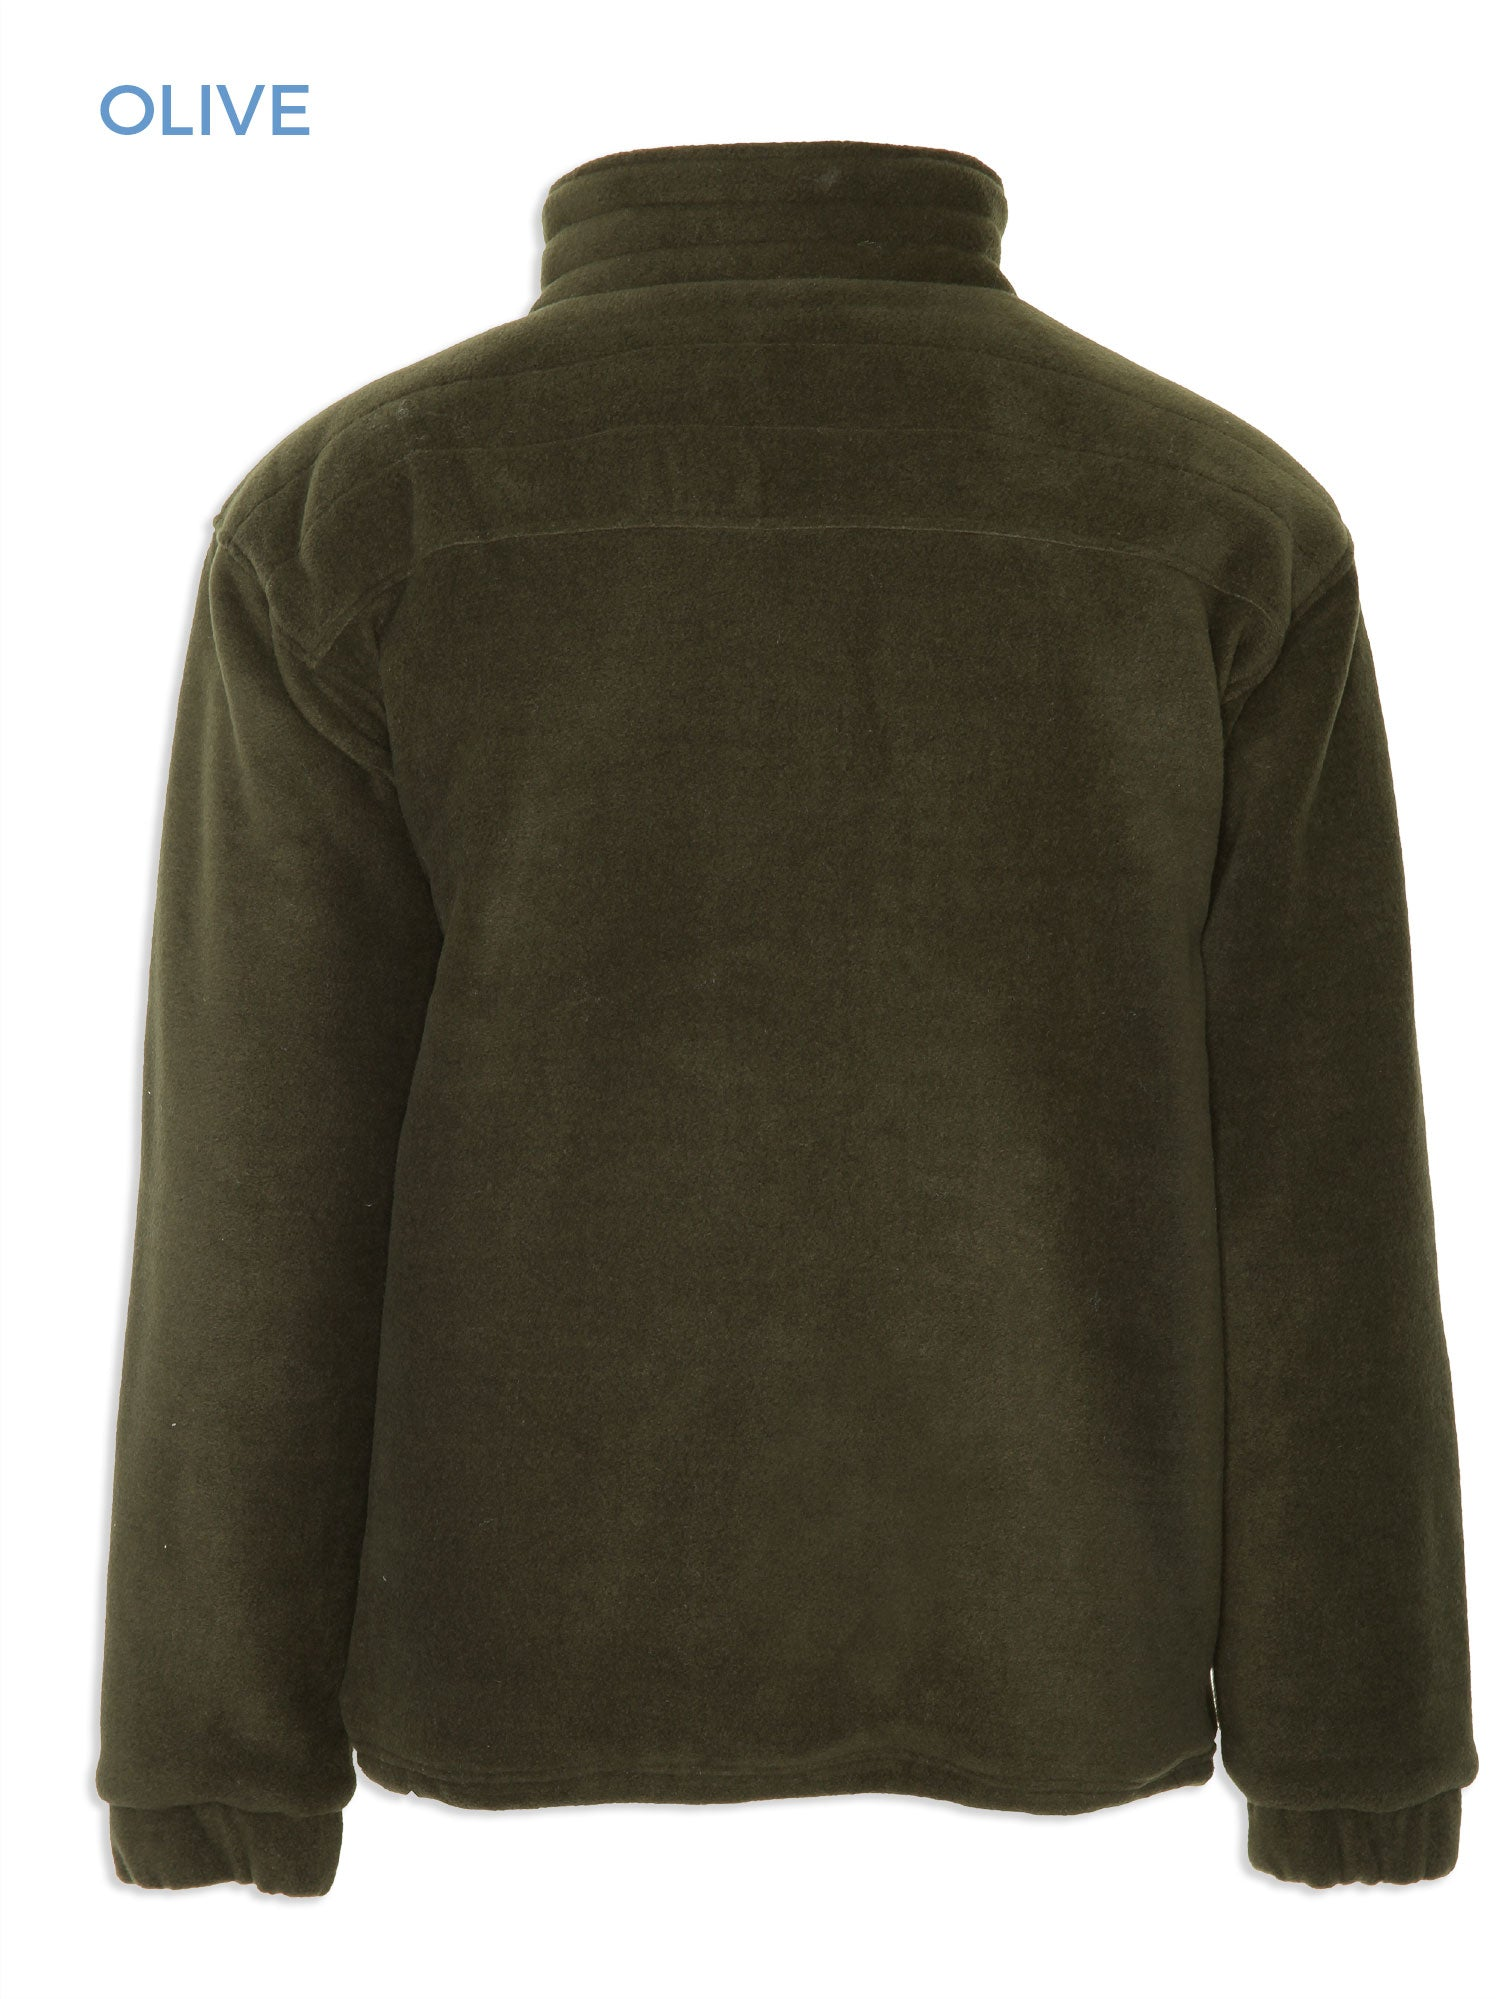 Back view Glen Lined Fleece Jacket from Champion in olive